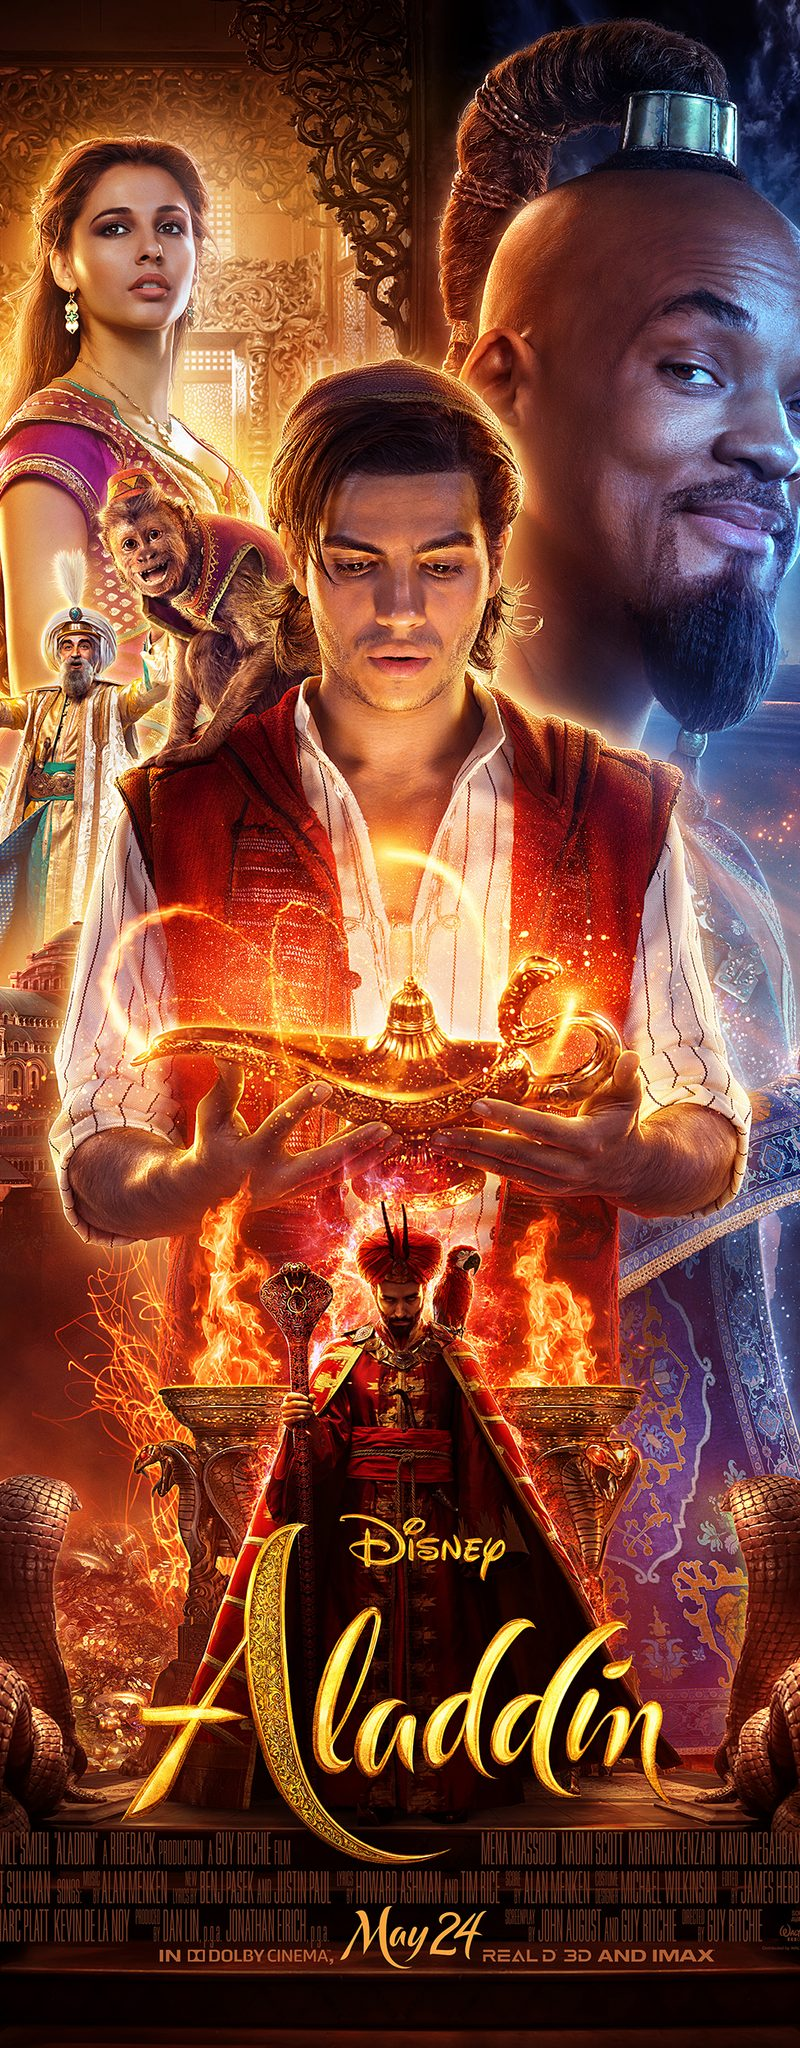 Friendly Fire-Episode 57 – Aladdin 2019 Review – Is it worth seeing another Hollywood Rehash?